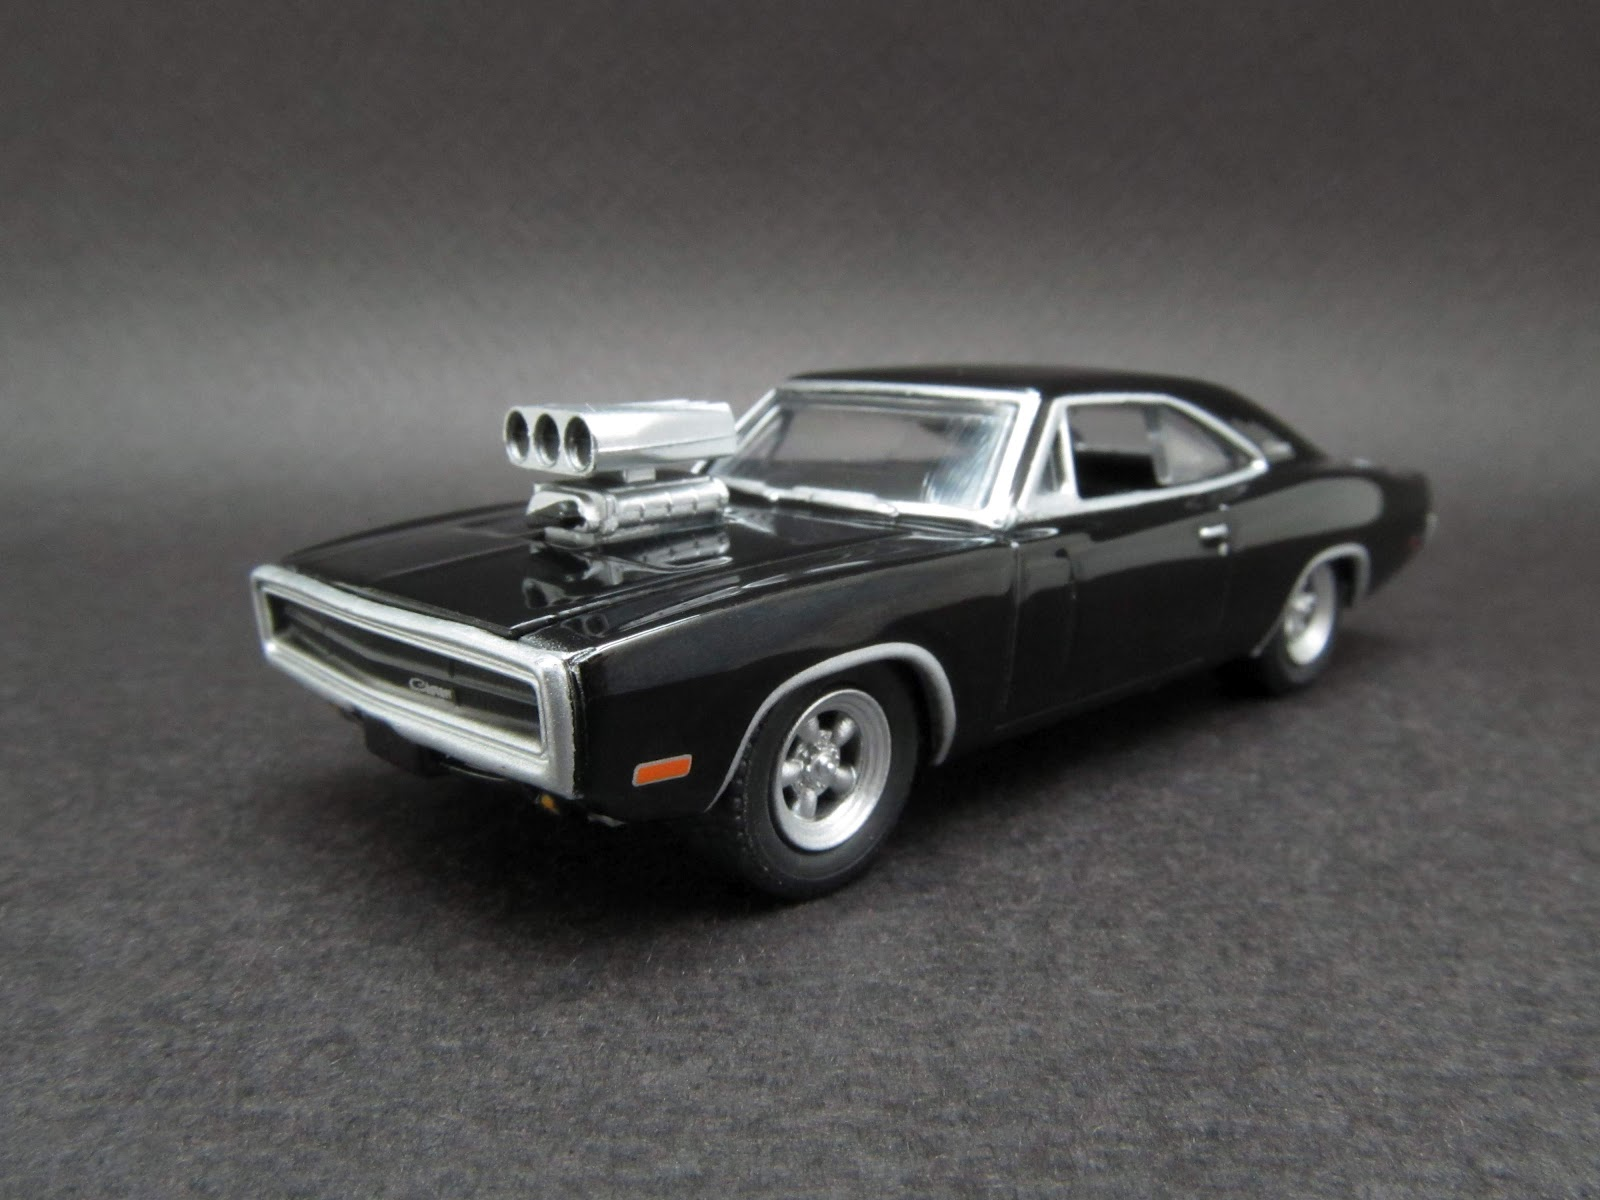 diecast hobbist 1970 dodge charger with blown engine the fast and the furious 2001. Black Bedroom Furniture Sets. Home Design Ideas